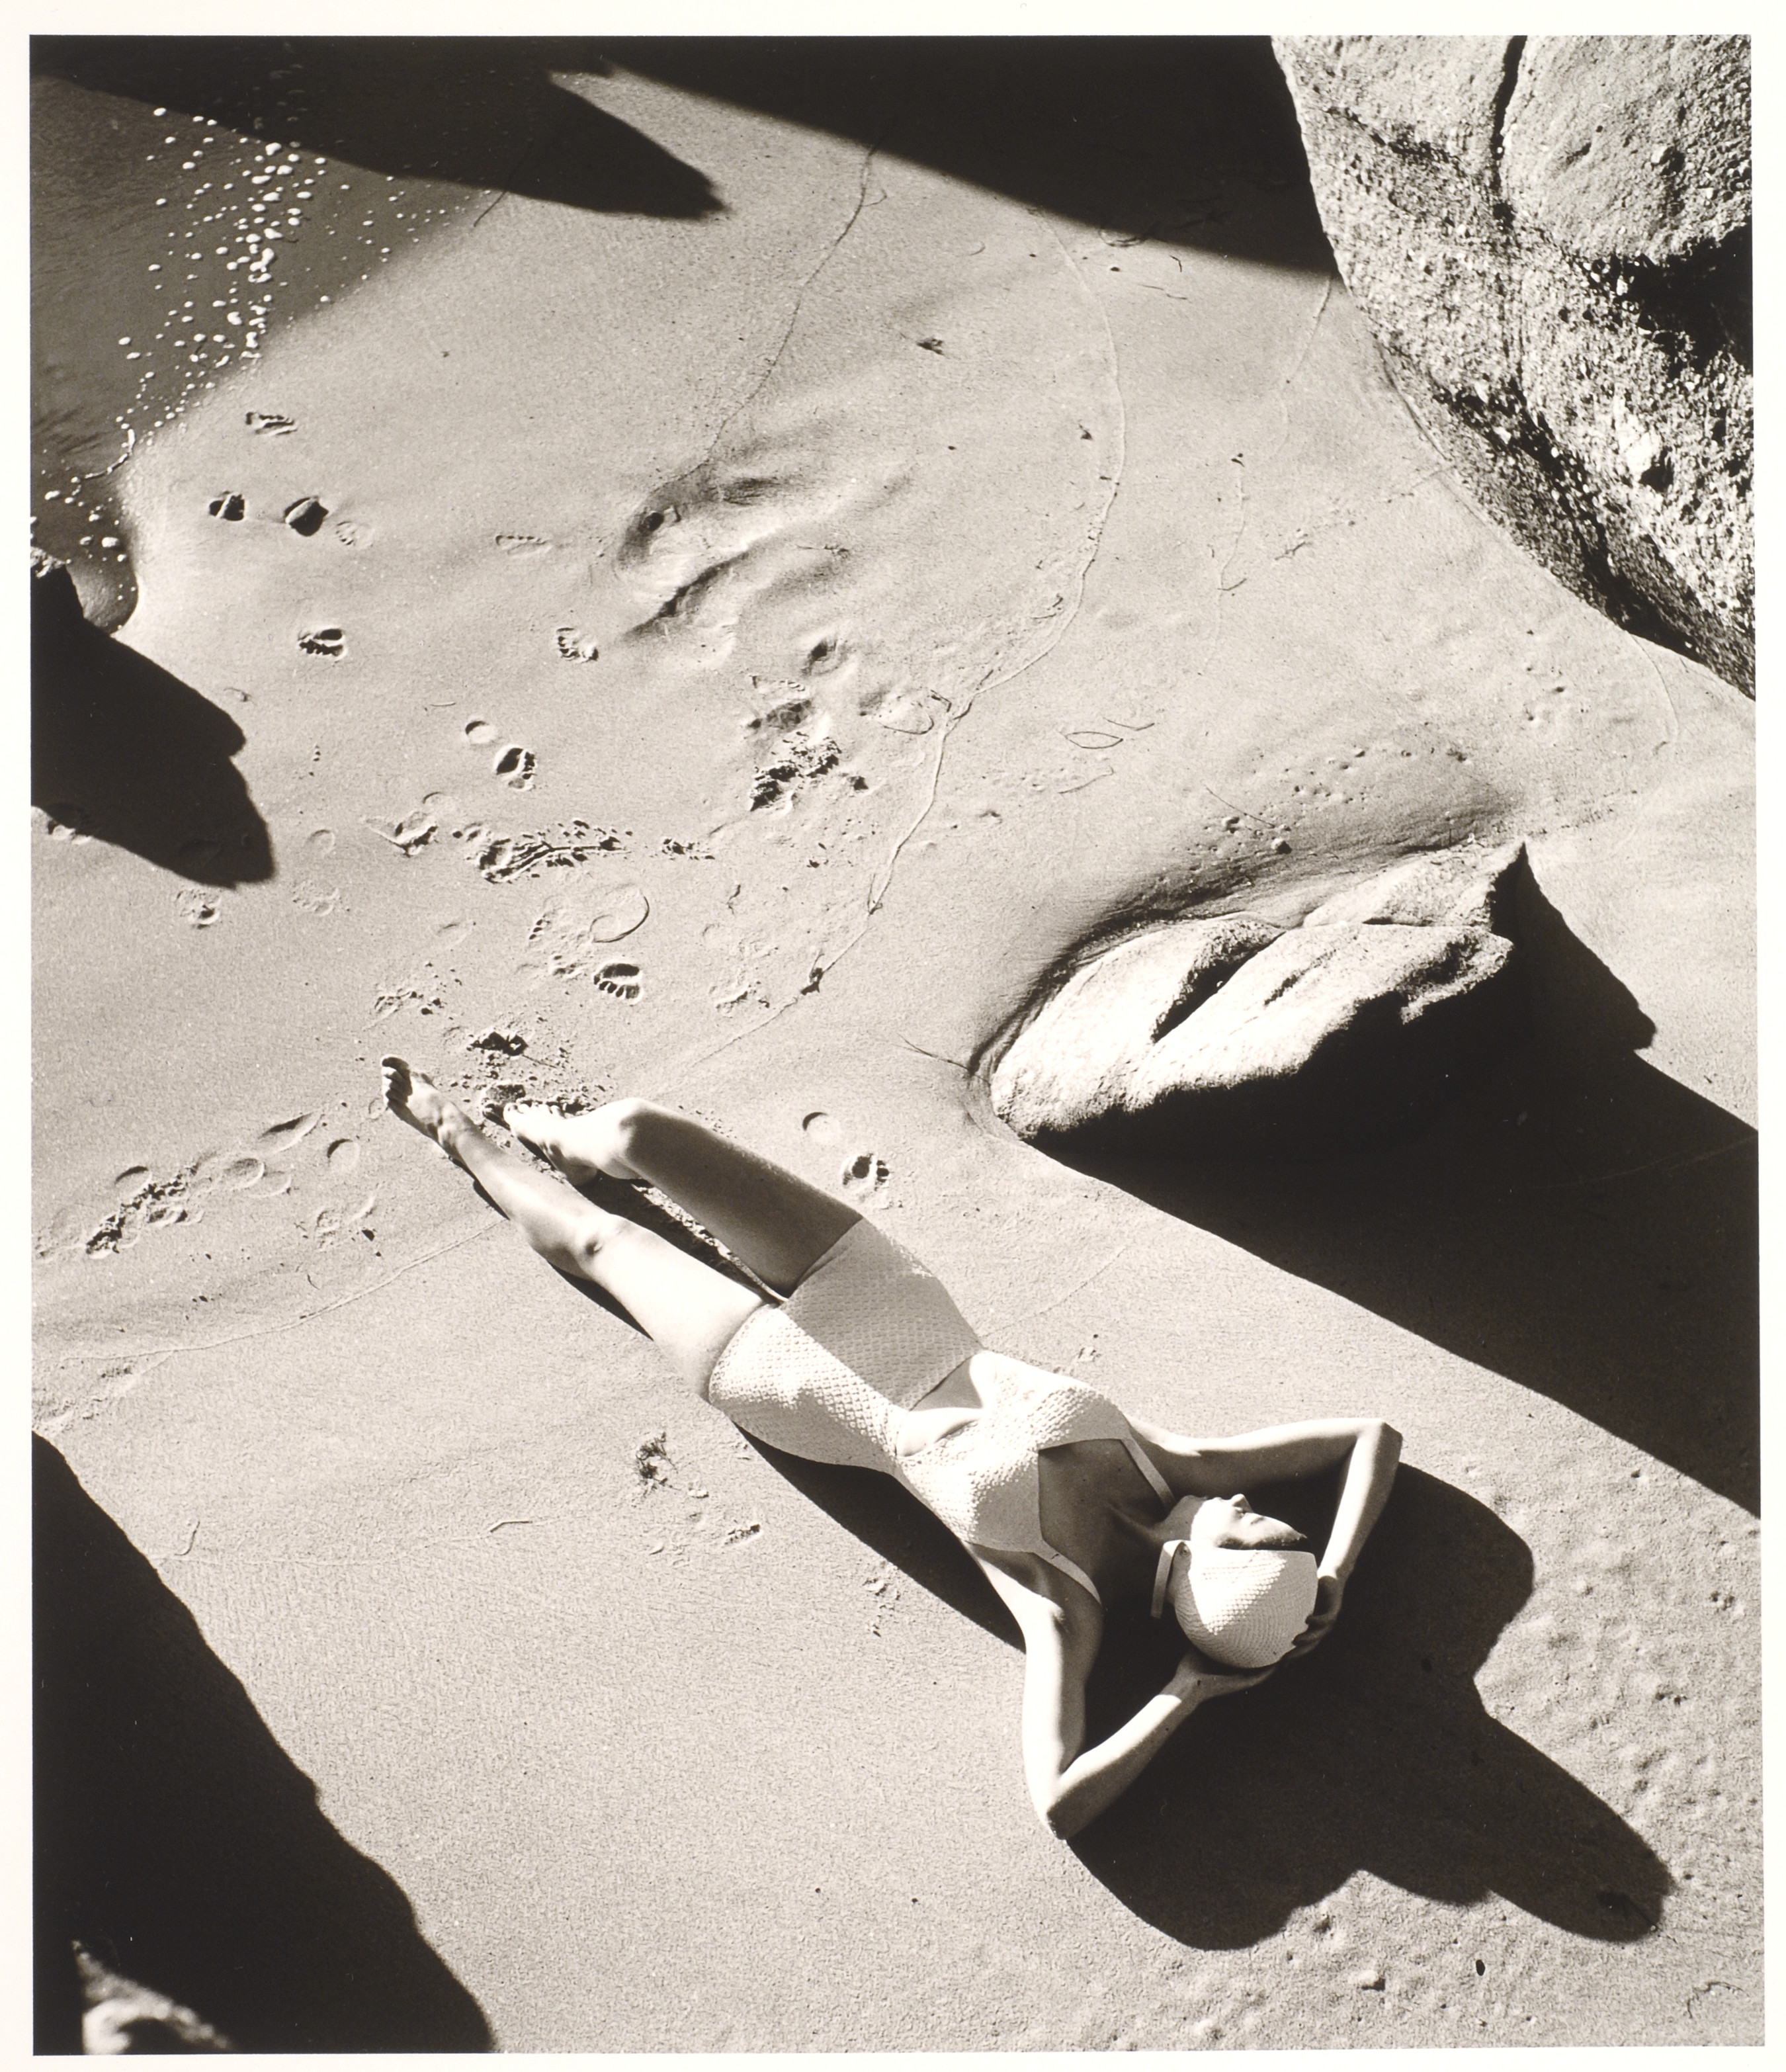 A black and white photograph of a light-skinned woman wearing a one-piece white bathing suit and white swim cap. She is lying down on sand with her hands behind her head. There are footprints in the sand below her, and the image is framed by large rocks.